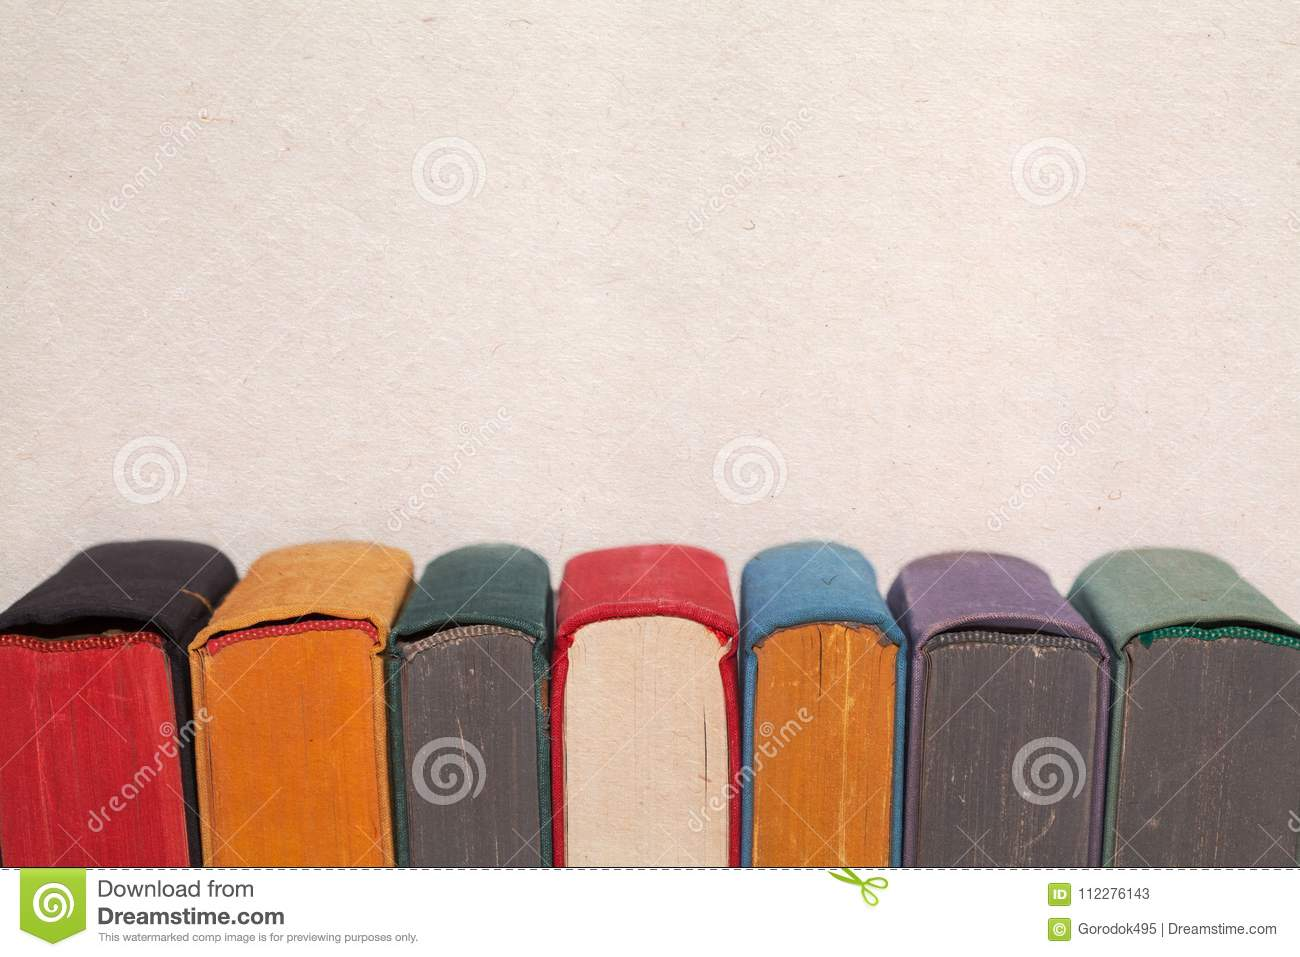 Colorful Vintage Books On Aged Textured Paper Background Covers